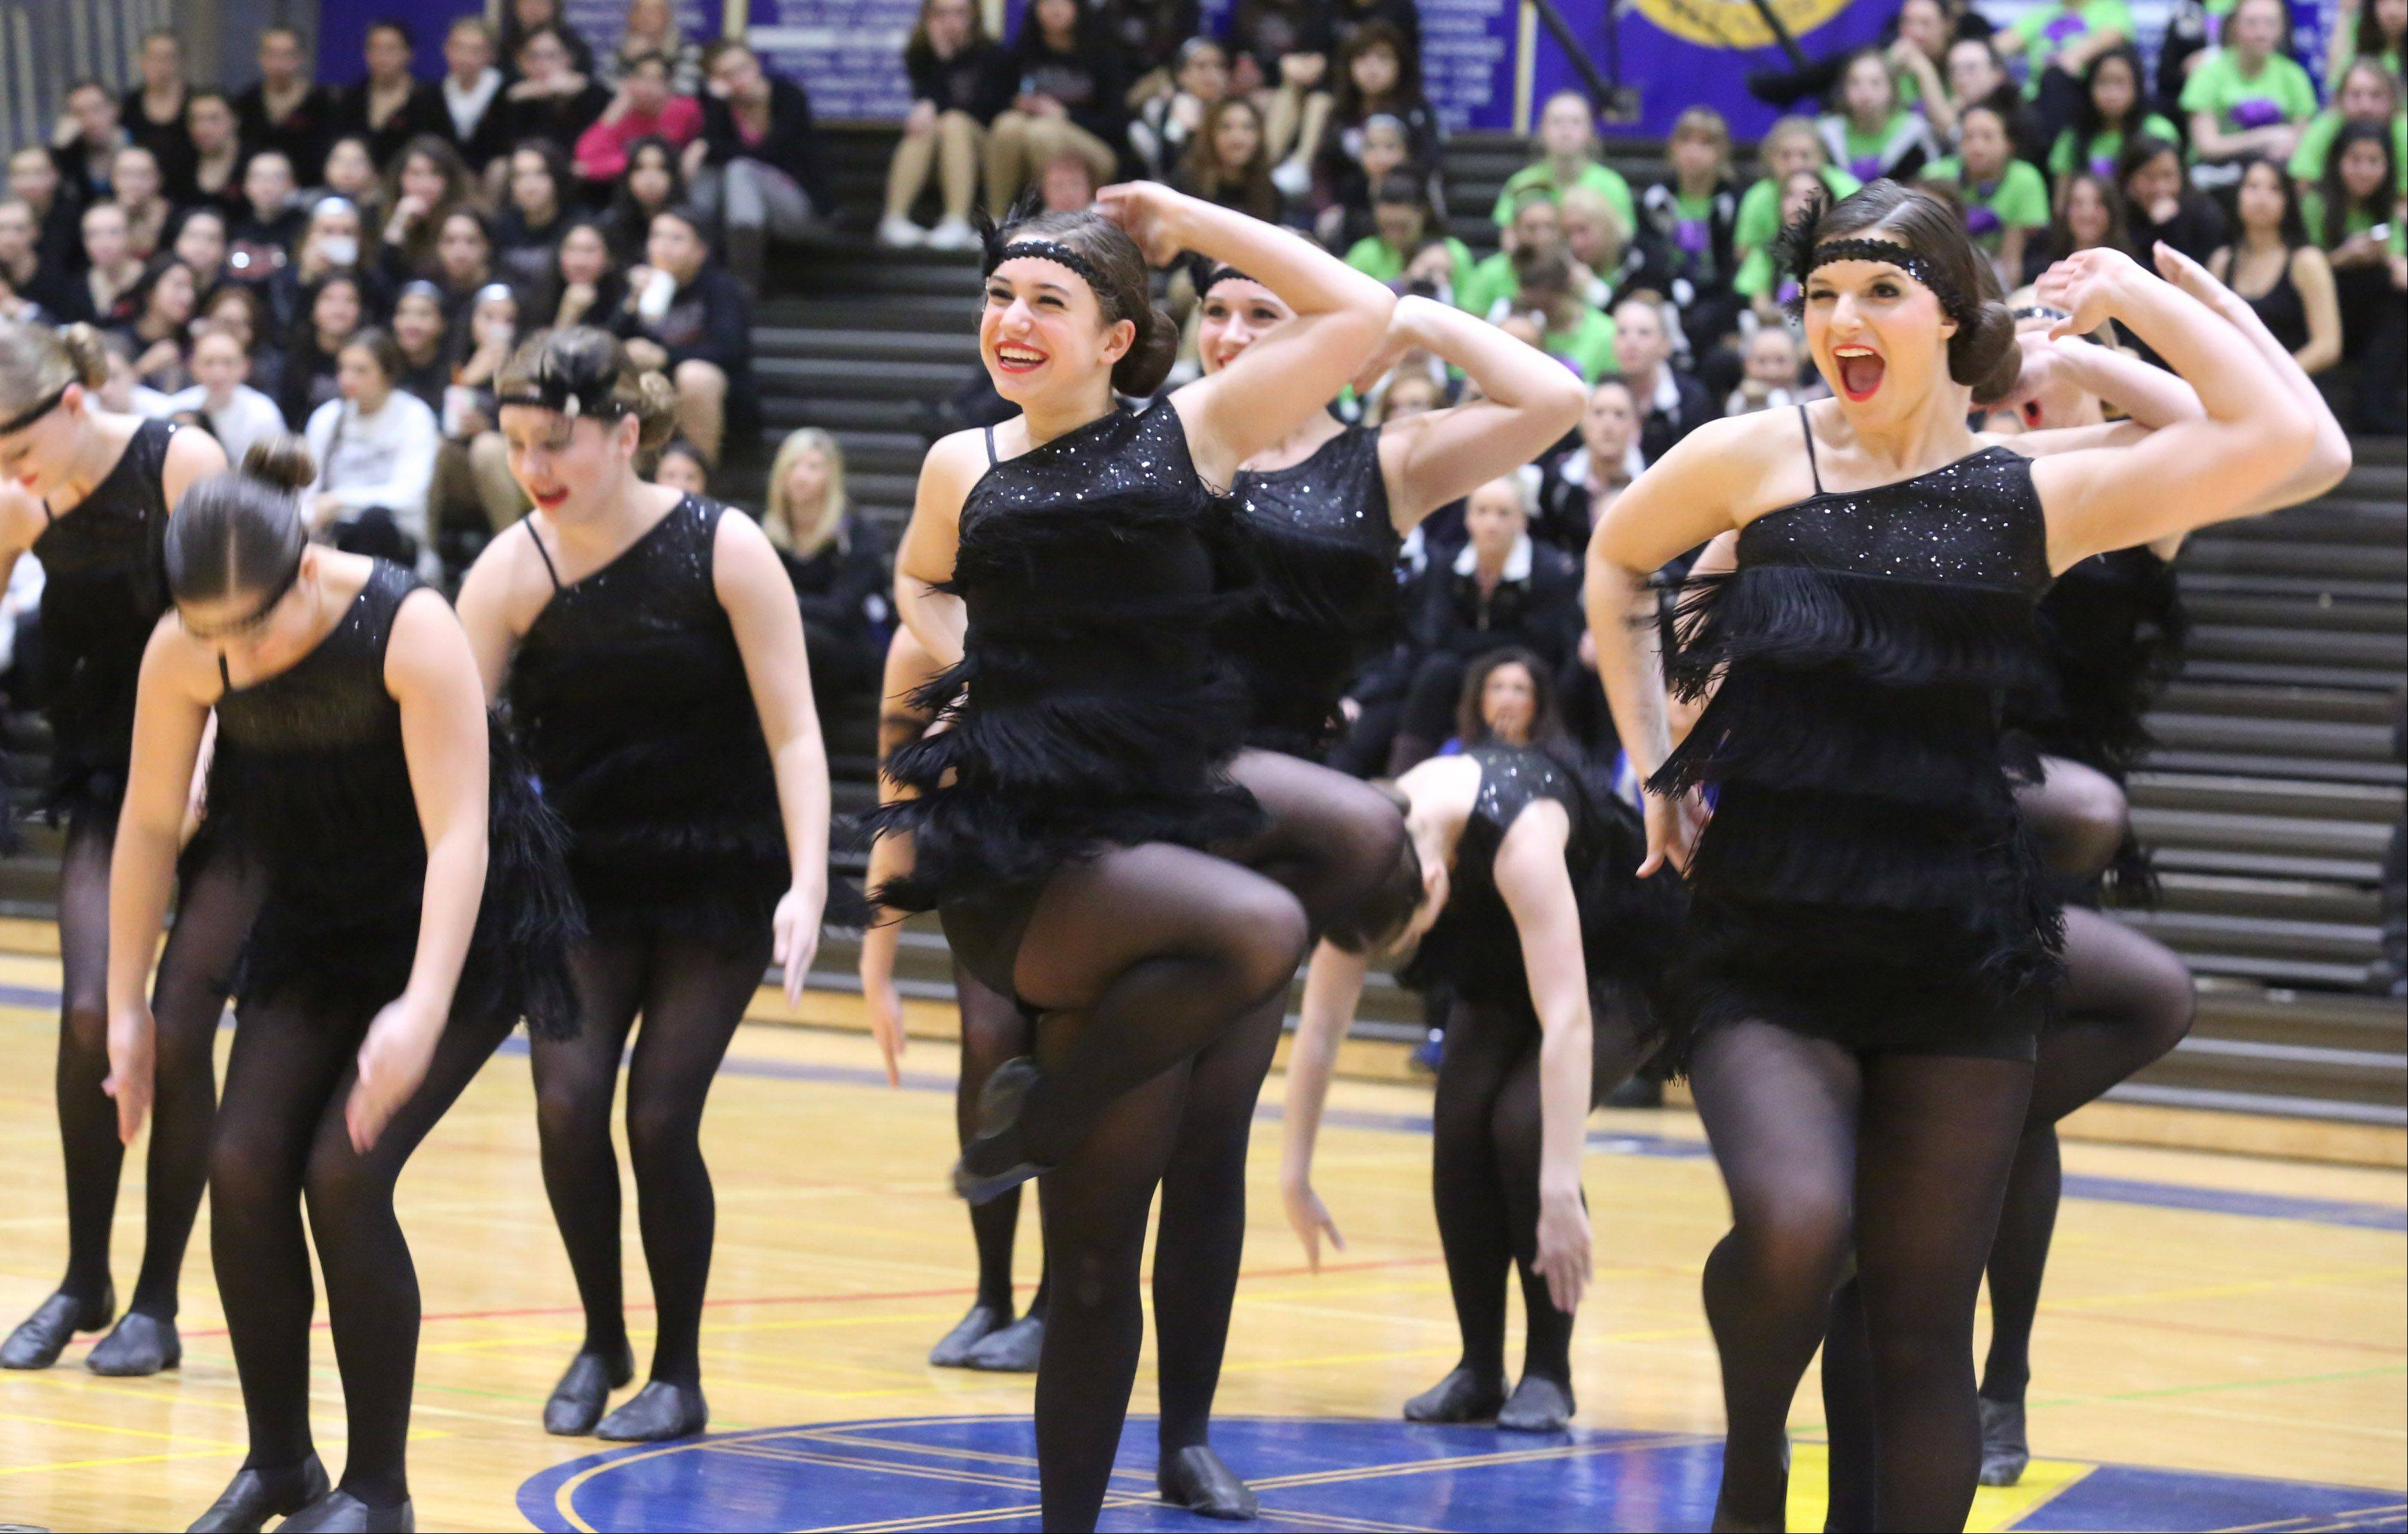 Glenbard West High School's dance team competes at the IHSA competitive dance sectional at Glenbrook South High School on Saturday in Glenview.